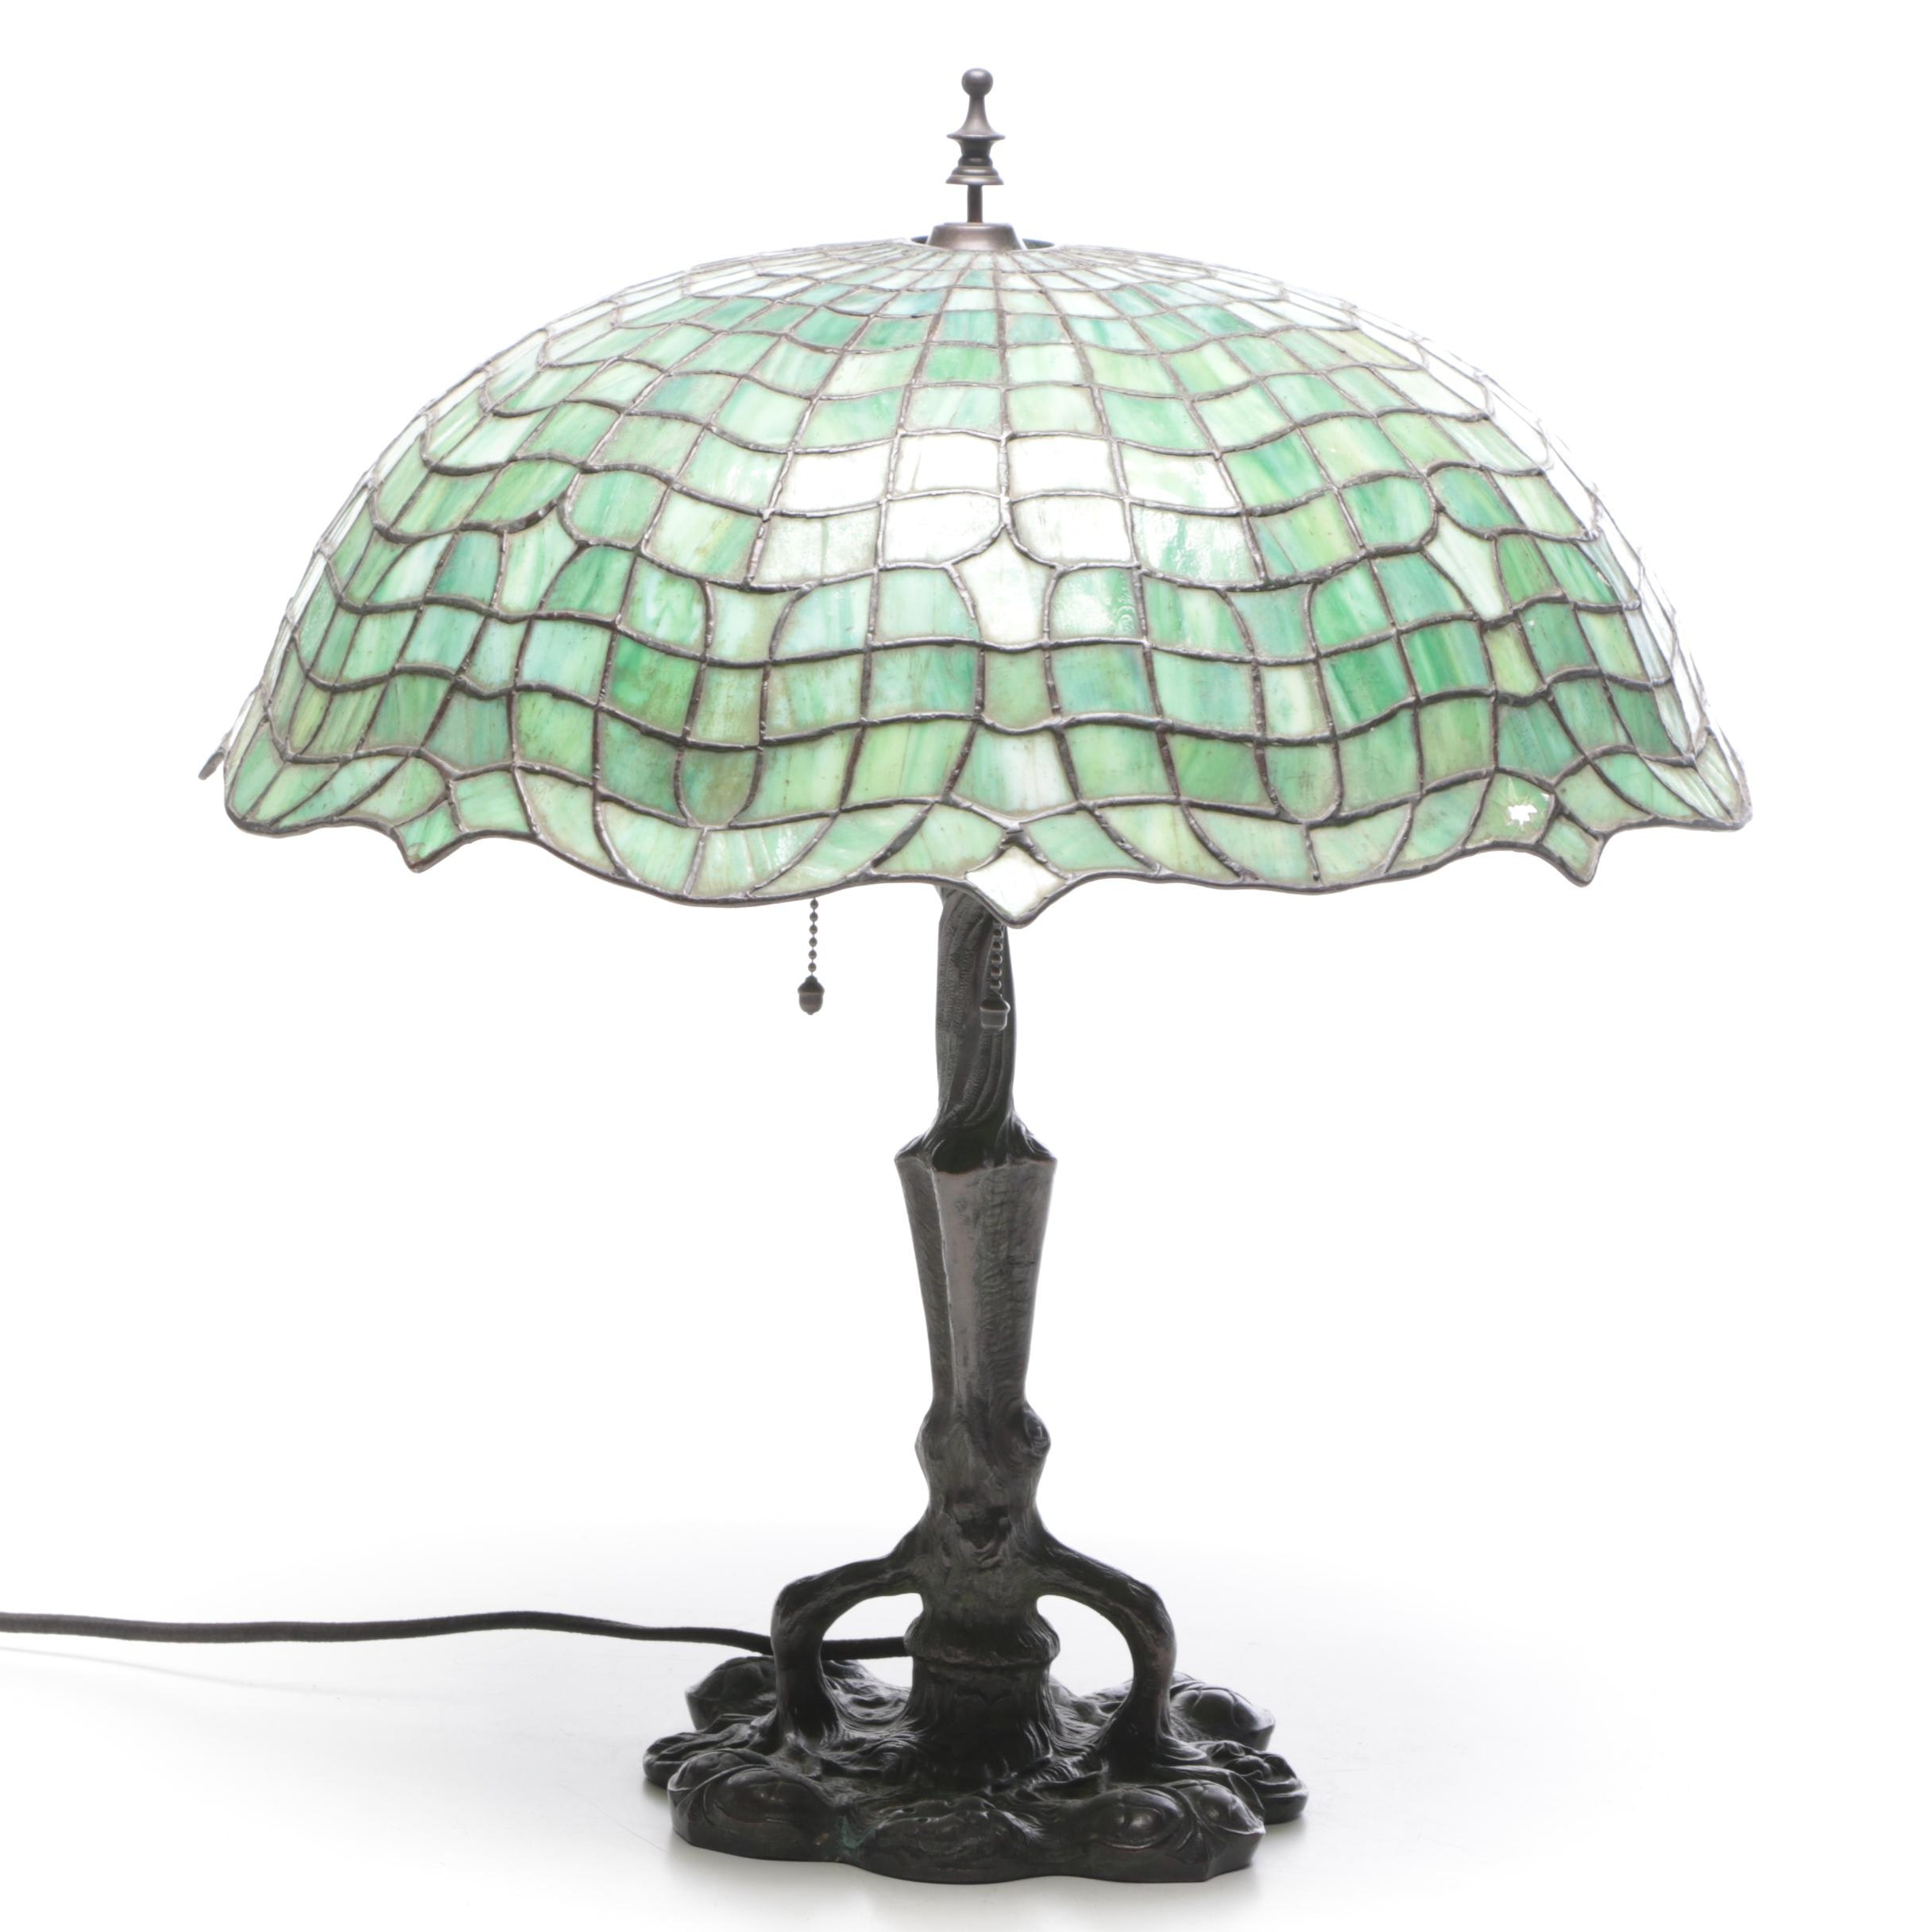 Cast Metal Art Nouveau Table Lamp with Leaded Glass Shade